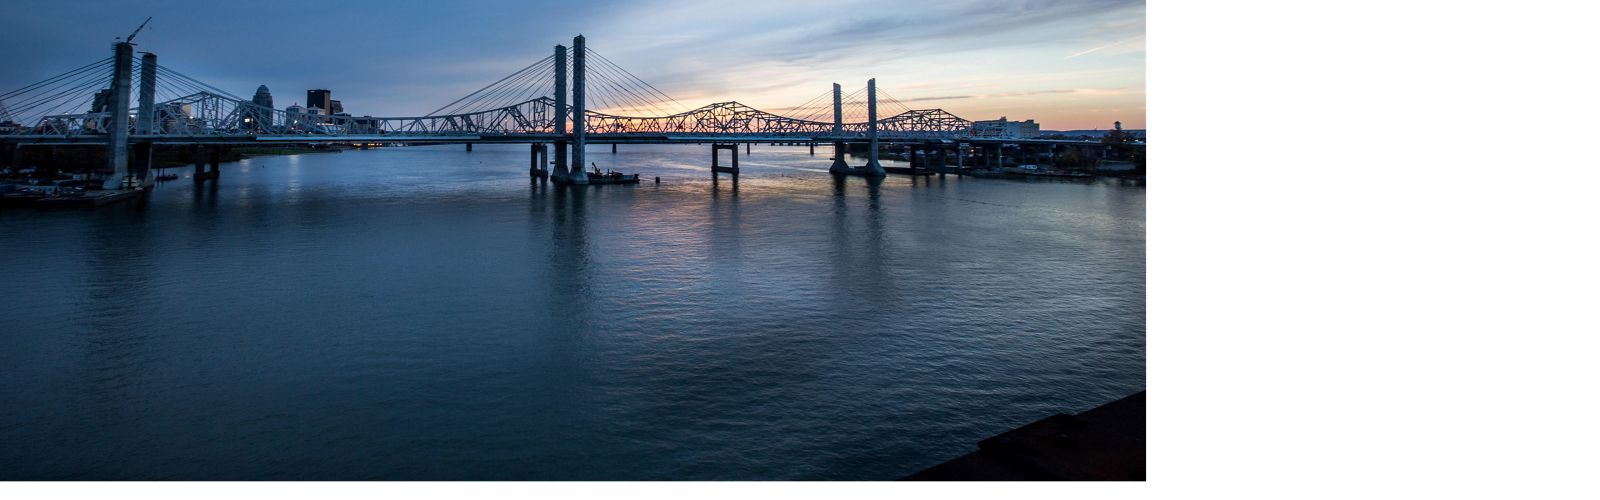 View of the Second Street Bridge (George Rogers Clark Memorial Bridge) over the Ohio River in Louisville, Kentucky.